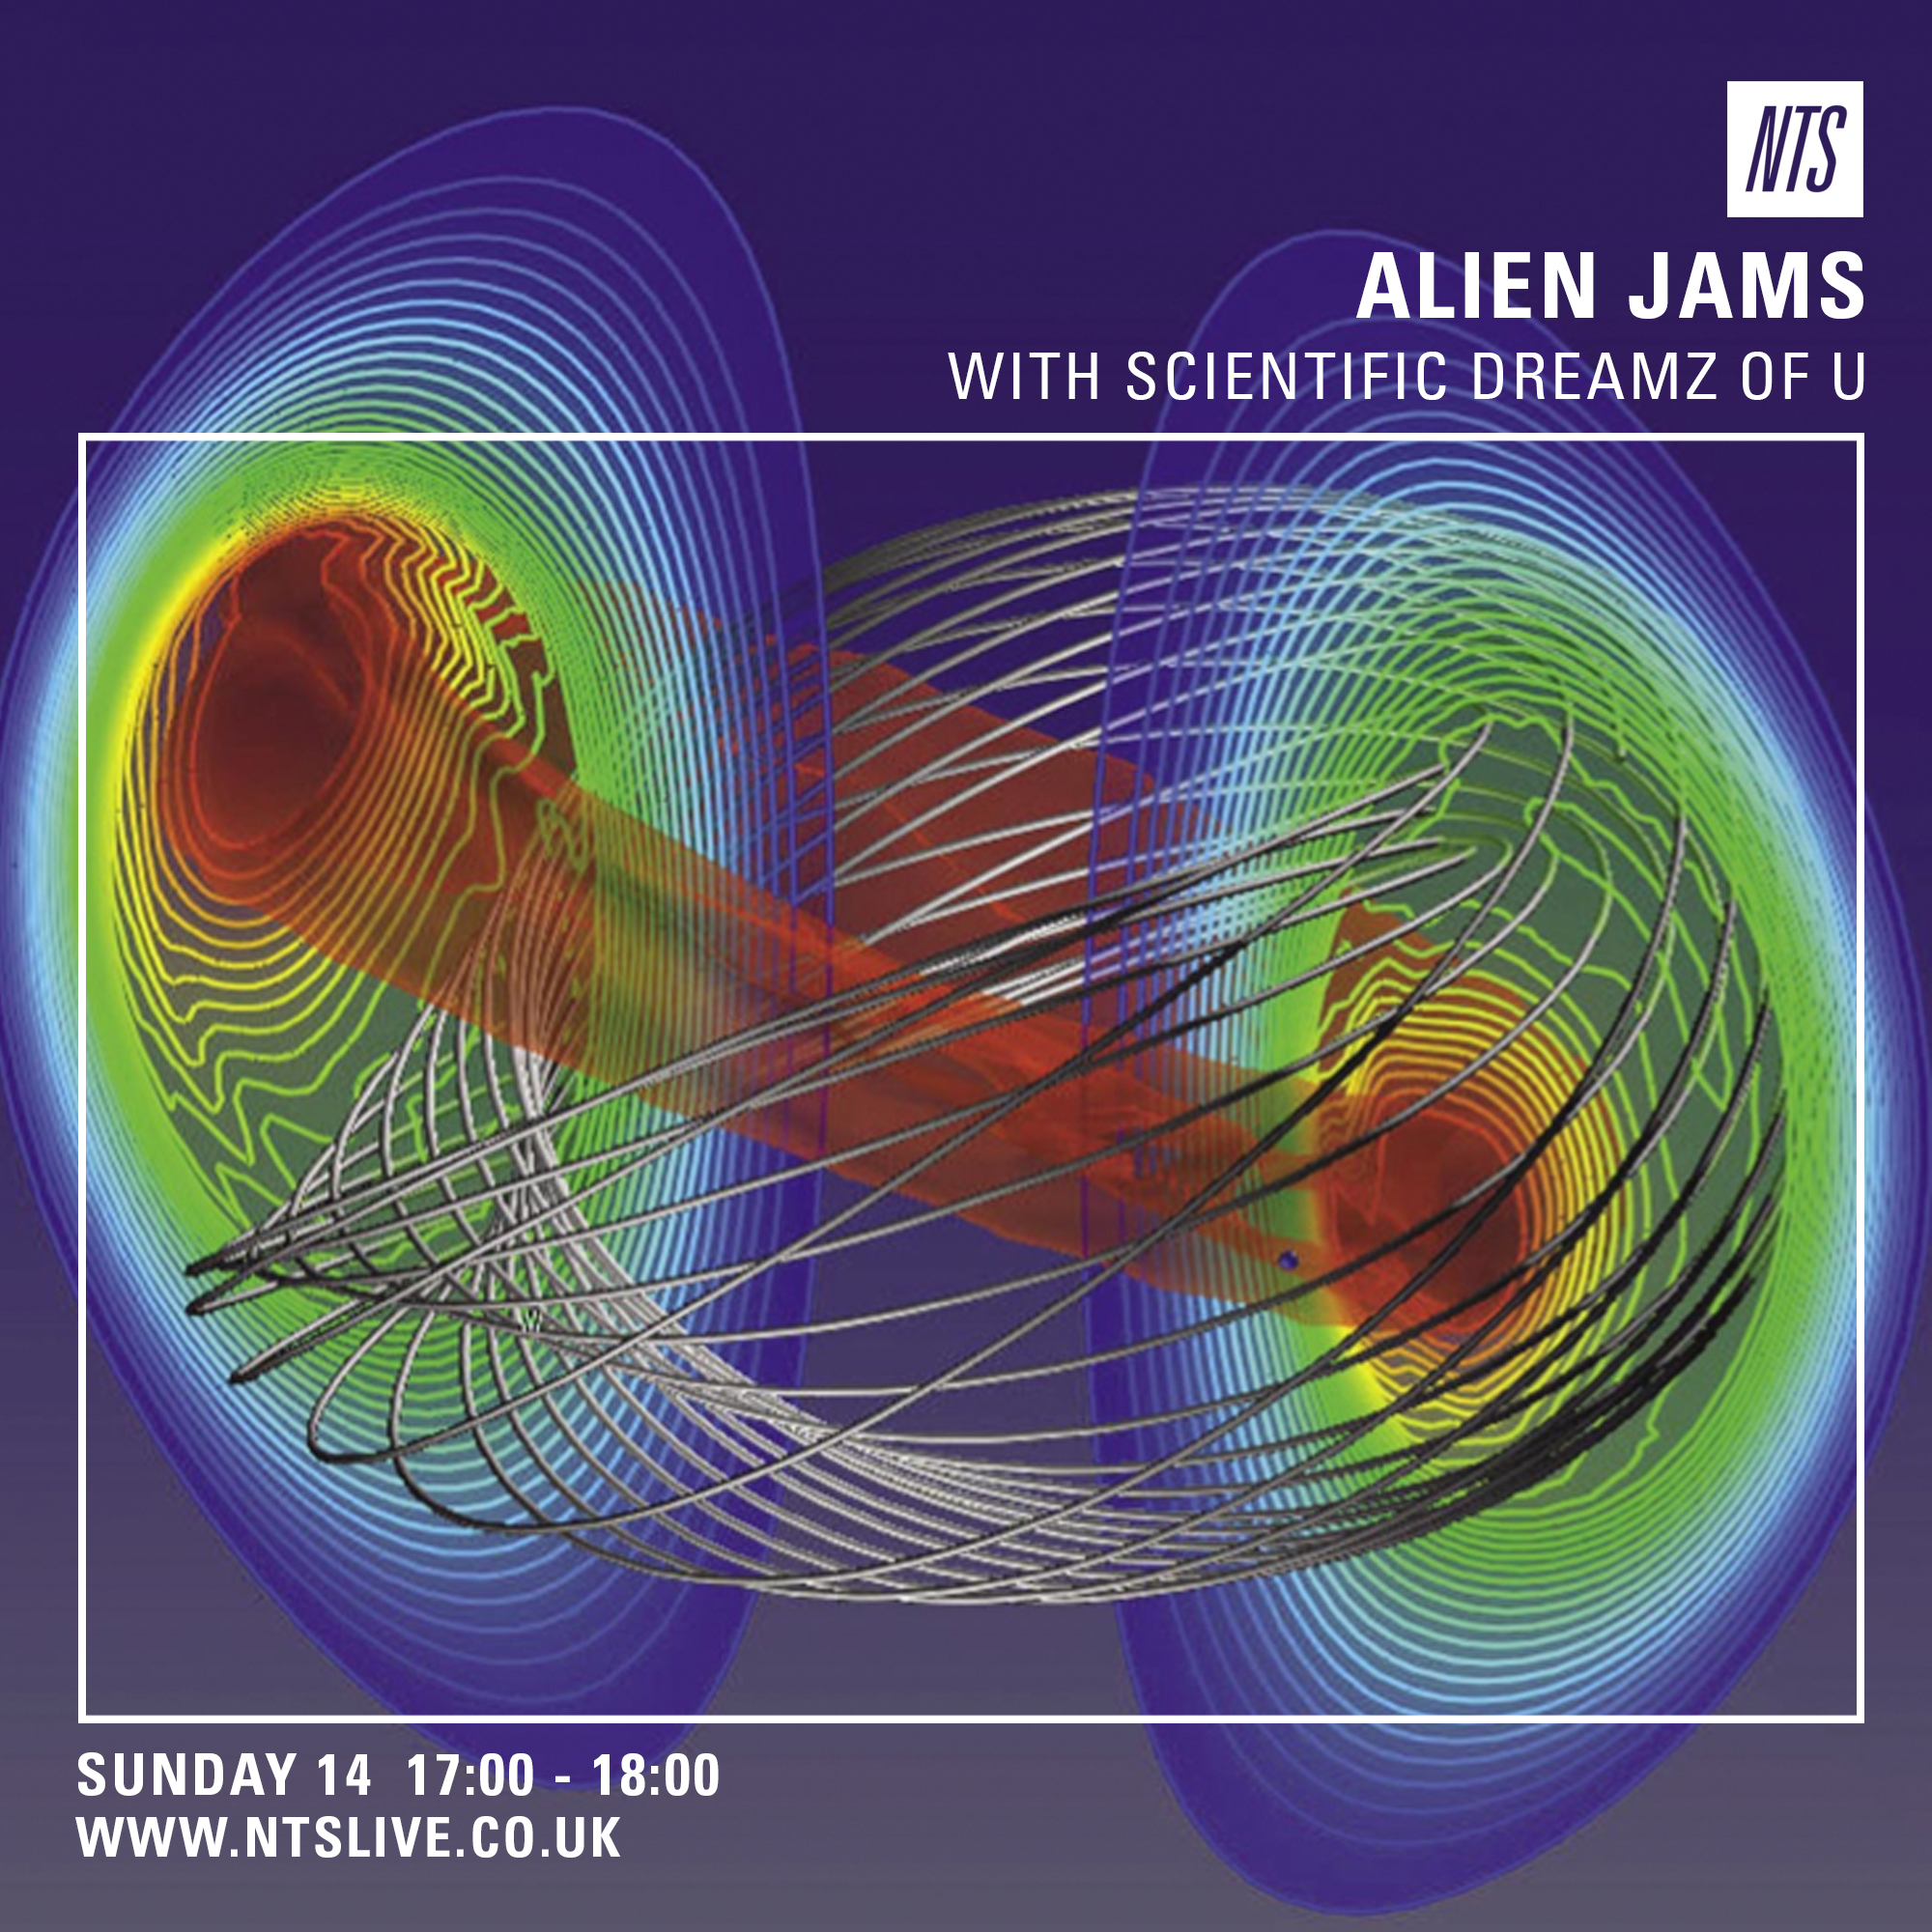 ALIEN JAMS Scientific Dreamz of U